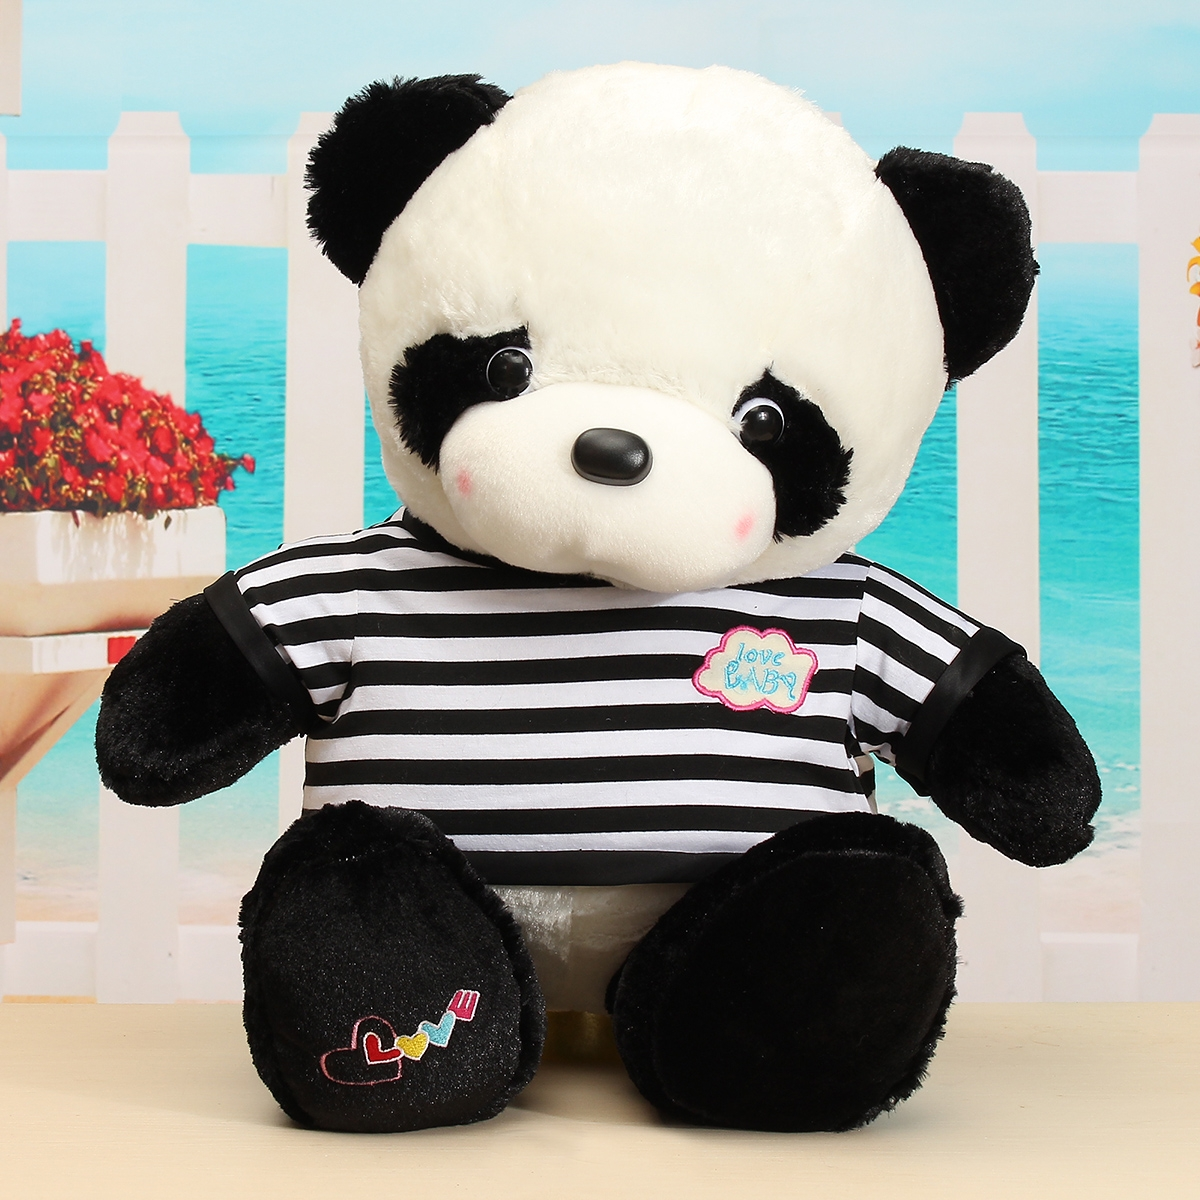 80cm 32 Large Cute Plush Panda Doll Stuffed Animal Kids Soft Toy""